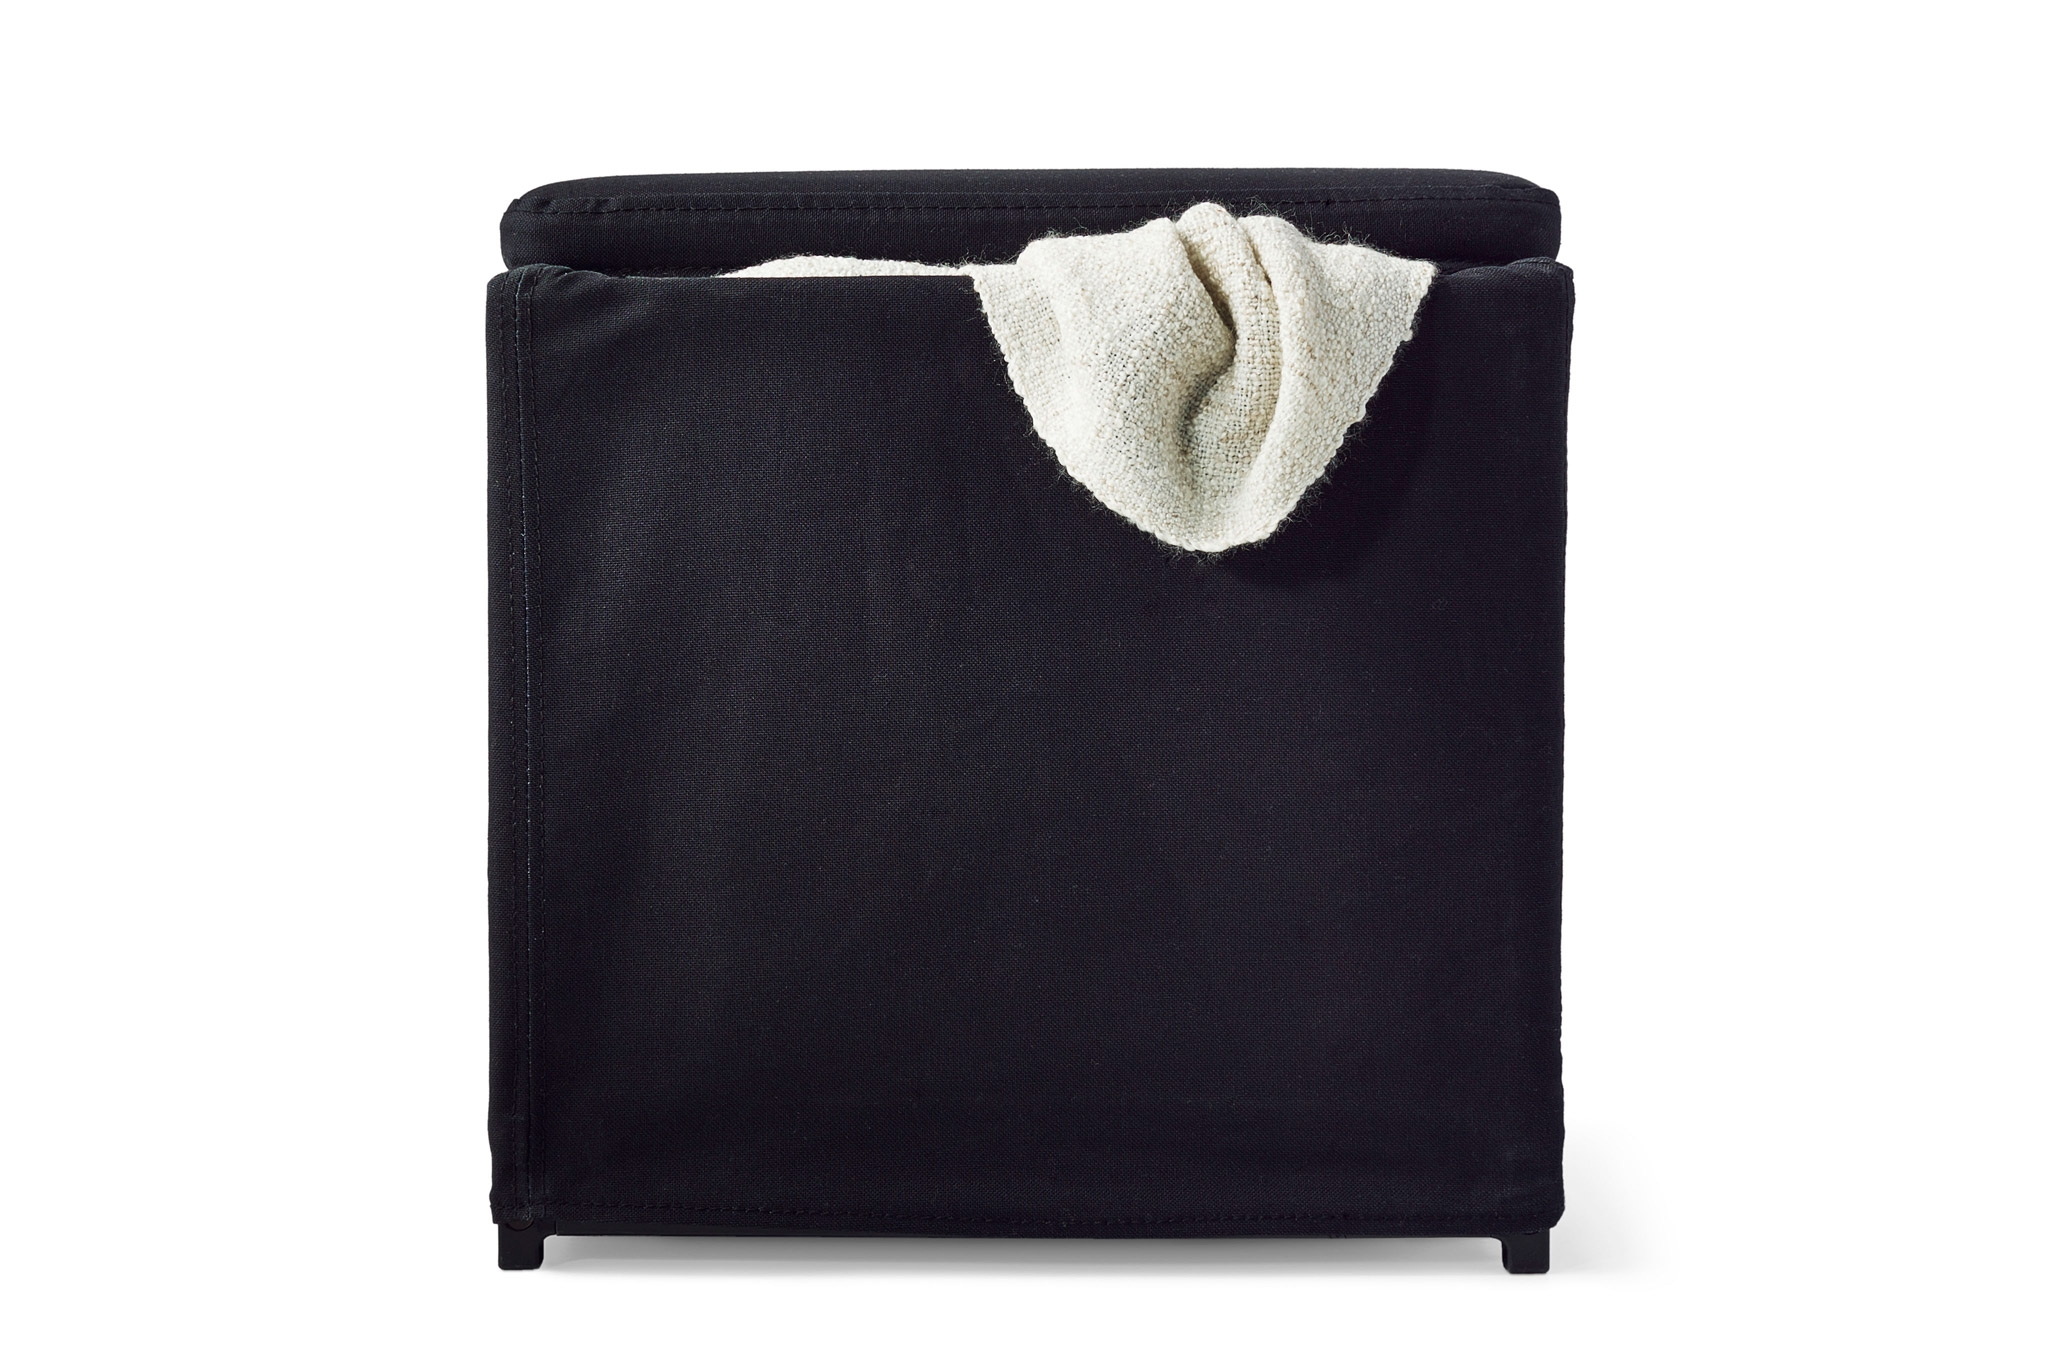 Fabric Footstools Fabric Pouffe Ikea Within Fabric Footstools And Pouffes (Image 4 of 15)